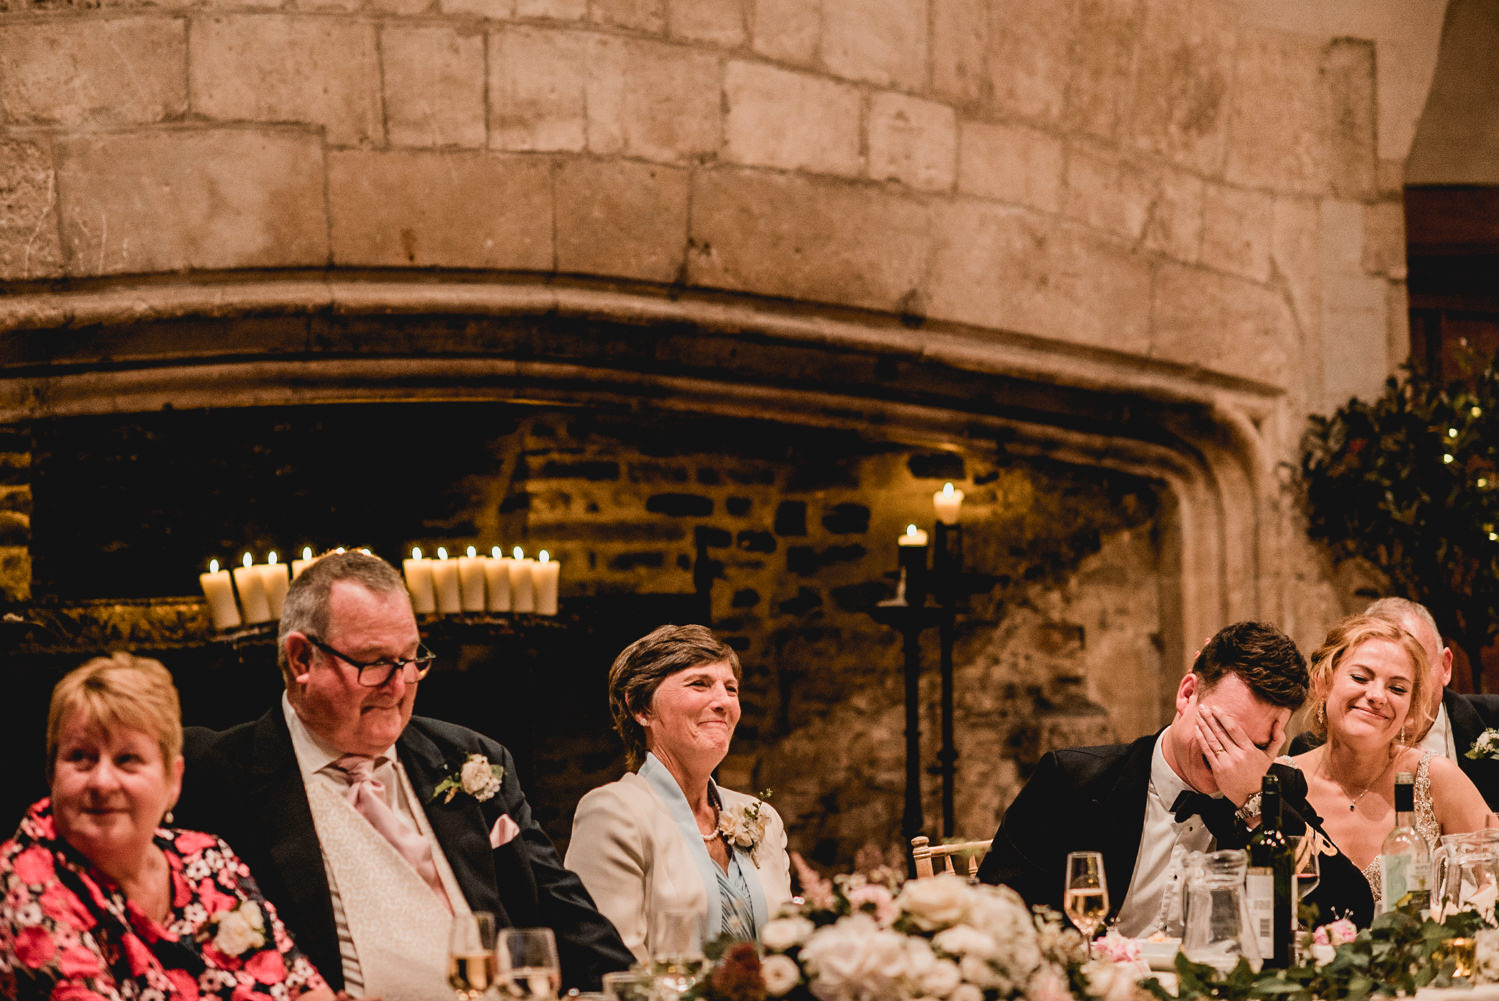 Speeches at Dartington Hall Wedding